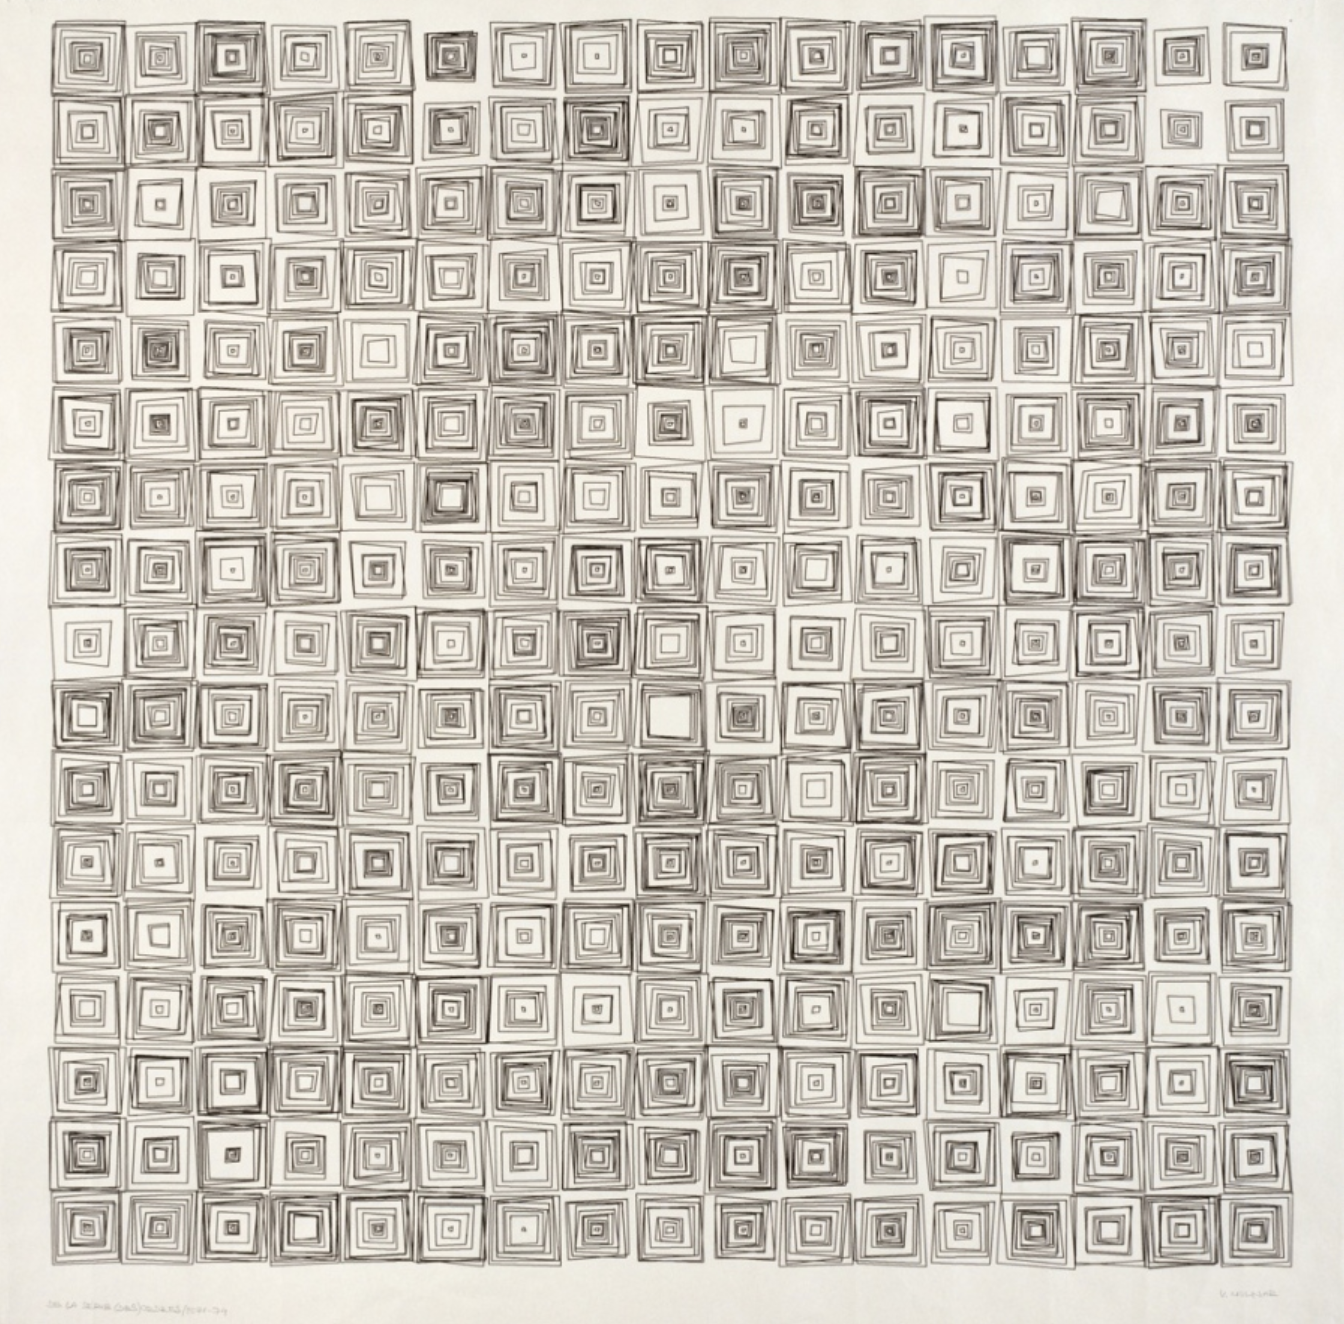 Vera Molnar, (Dés)Ordres, 1974, open series, plotter drawing, 70 x 70 cm